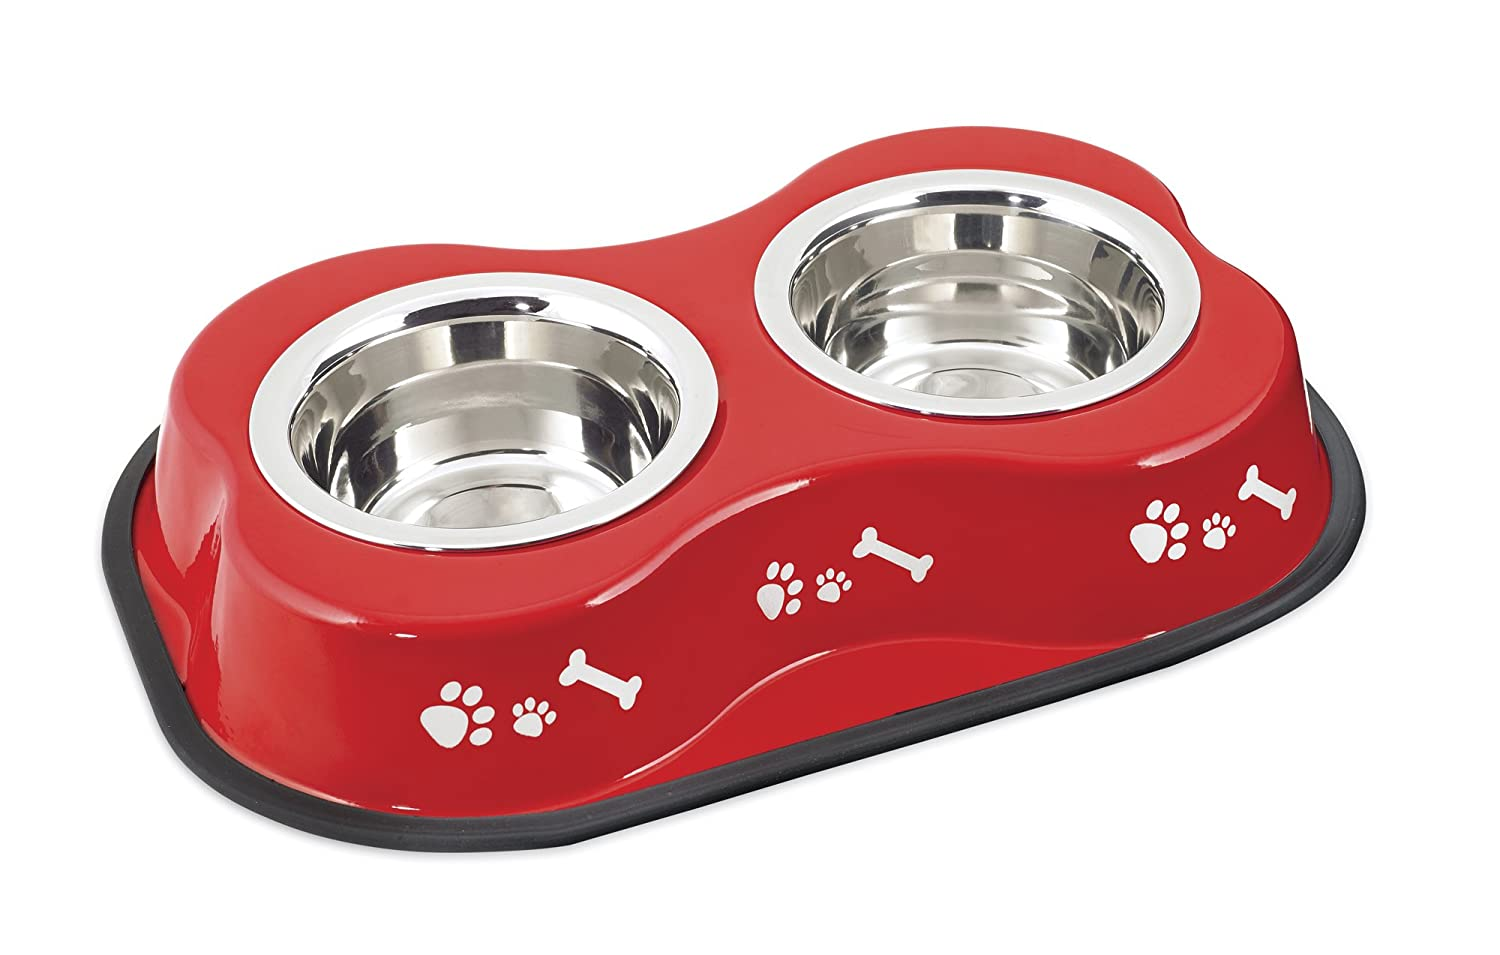 Bone Shaped Double Diner W 2 1pt Stainless Steel Bowls-Bone & Paws Print Red